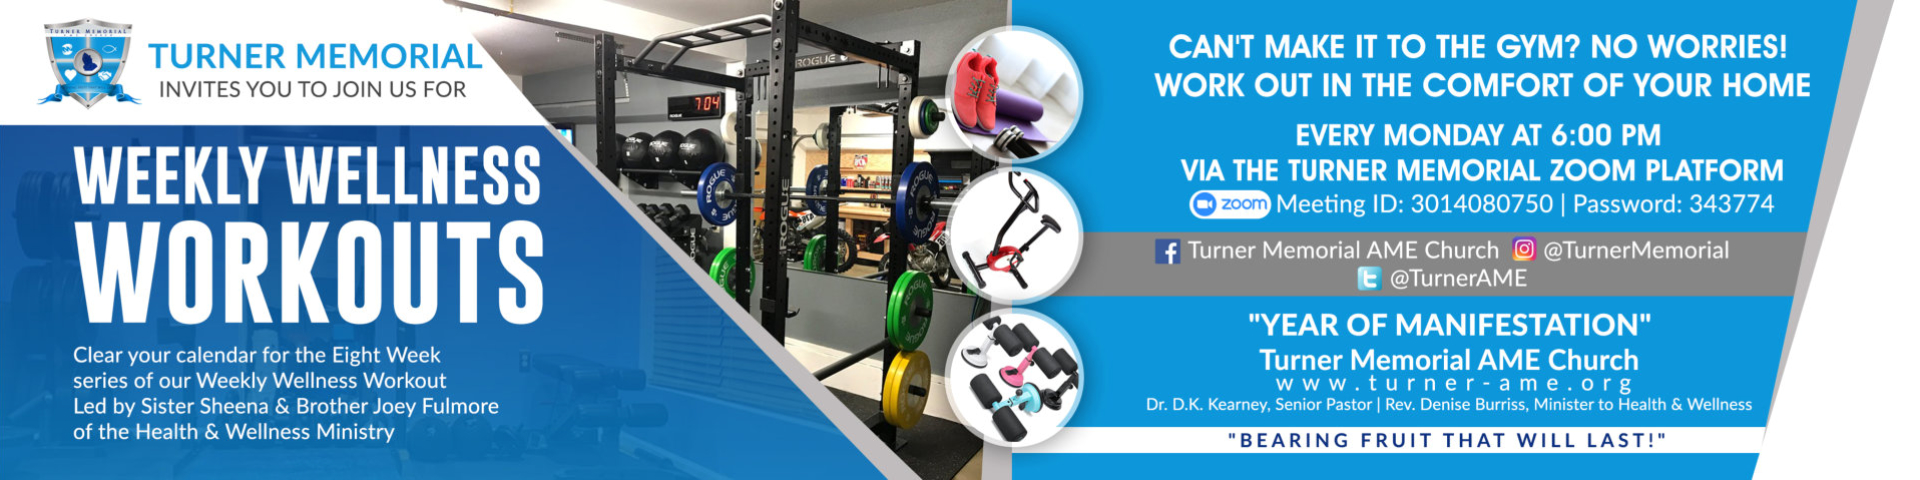 Weekly Wellness Workouts Banner